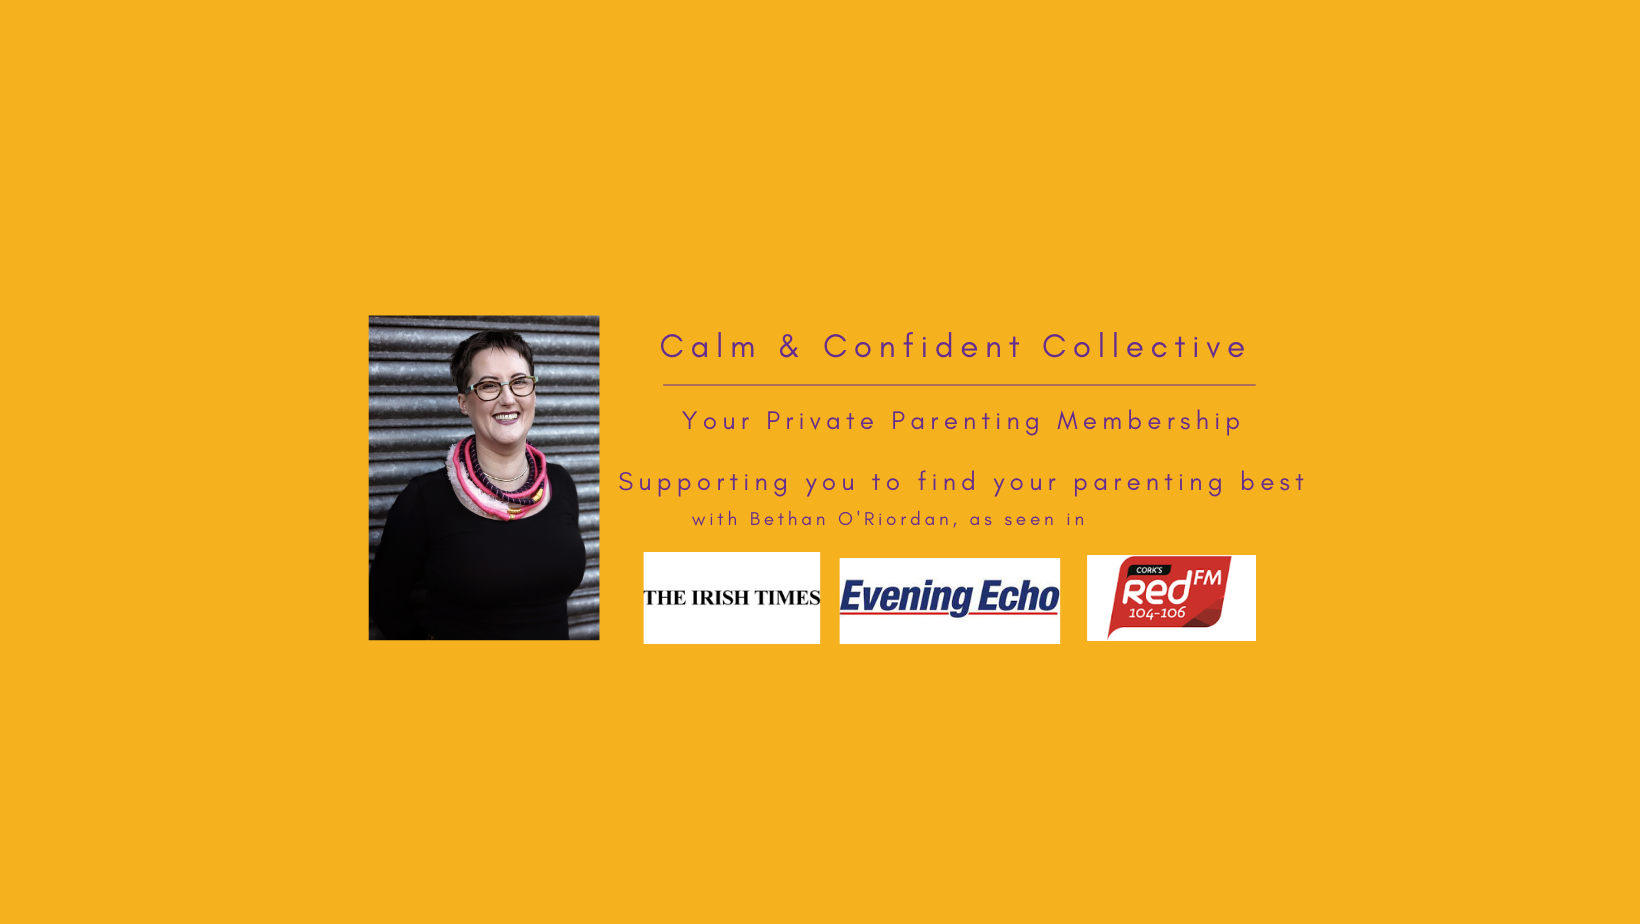 Join the Calm & Confident Collective & find your parenting best